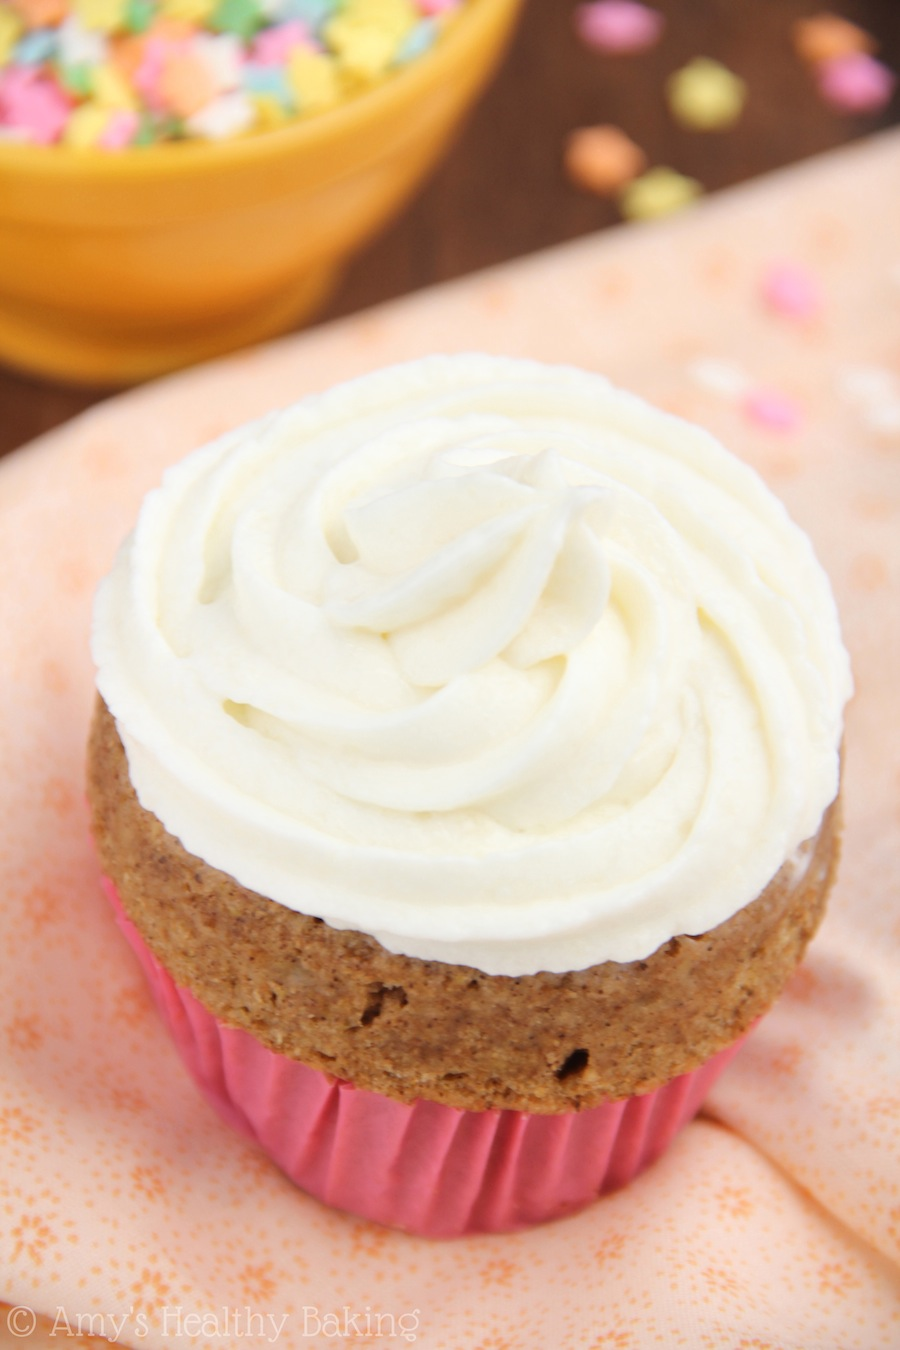 how to cook cupcakes in microwave